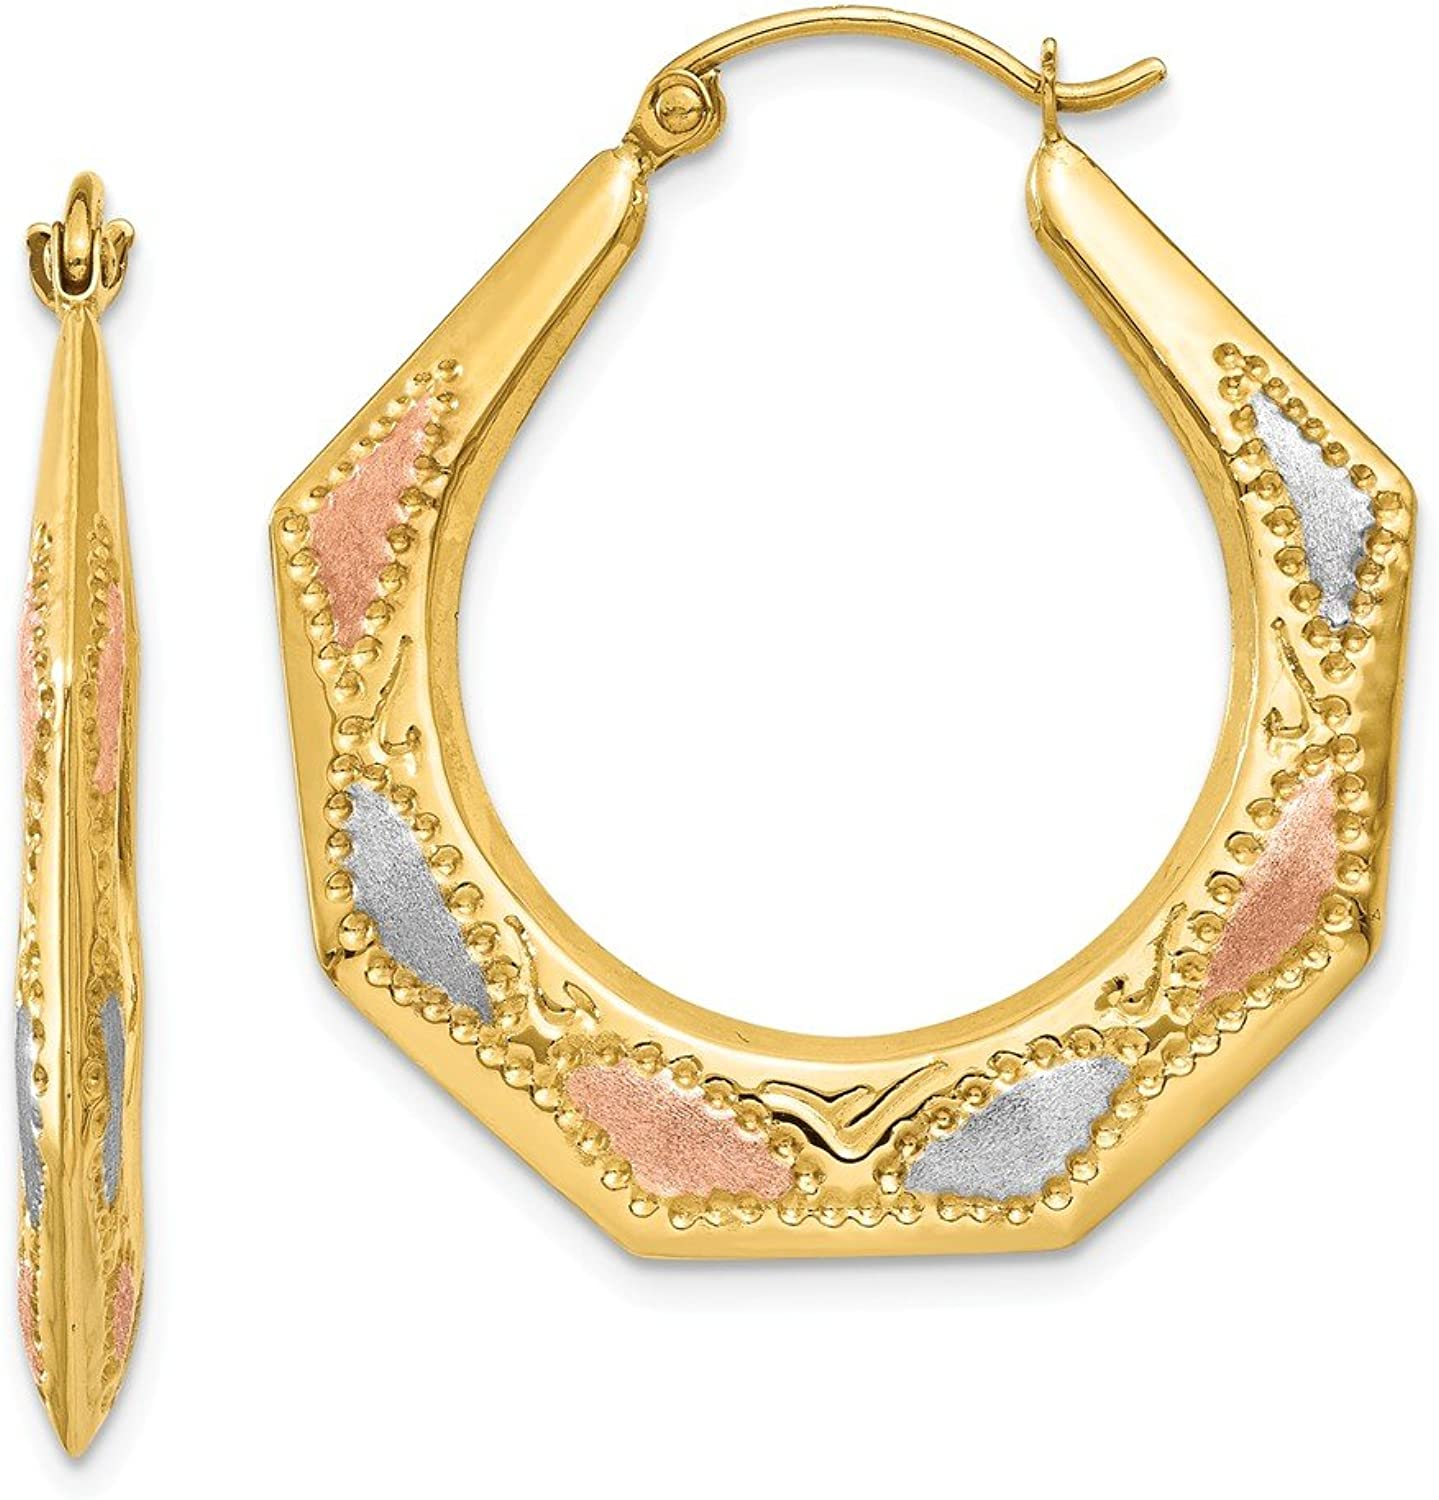 Beautiful rhodium plated gold and silver 14K rhodiumplatedgoldandsilver 14K & White and pink Rhodium Hollow Hoop Earrings